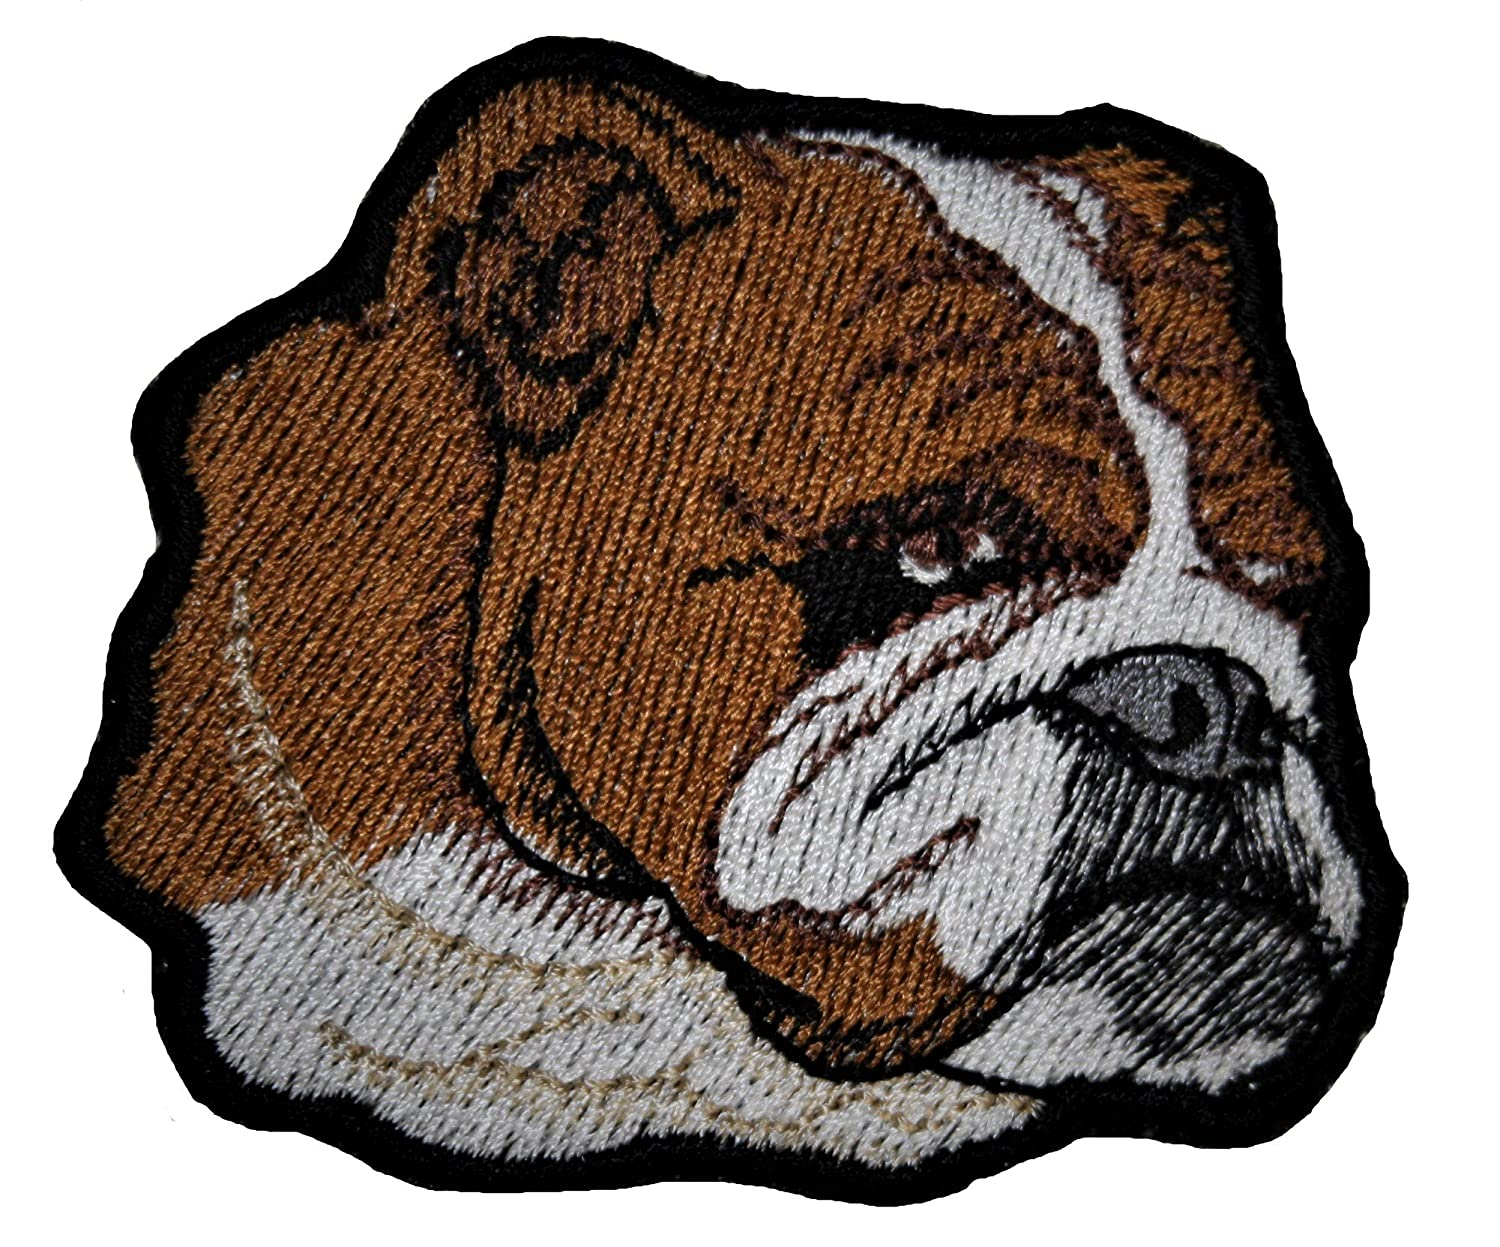 A-9, Bulldog Dog Animals Embroidered Iron on Pieces Applique Patch Dog 3.0 x 2.75 inches (7.7 x 7 cm)